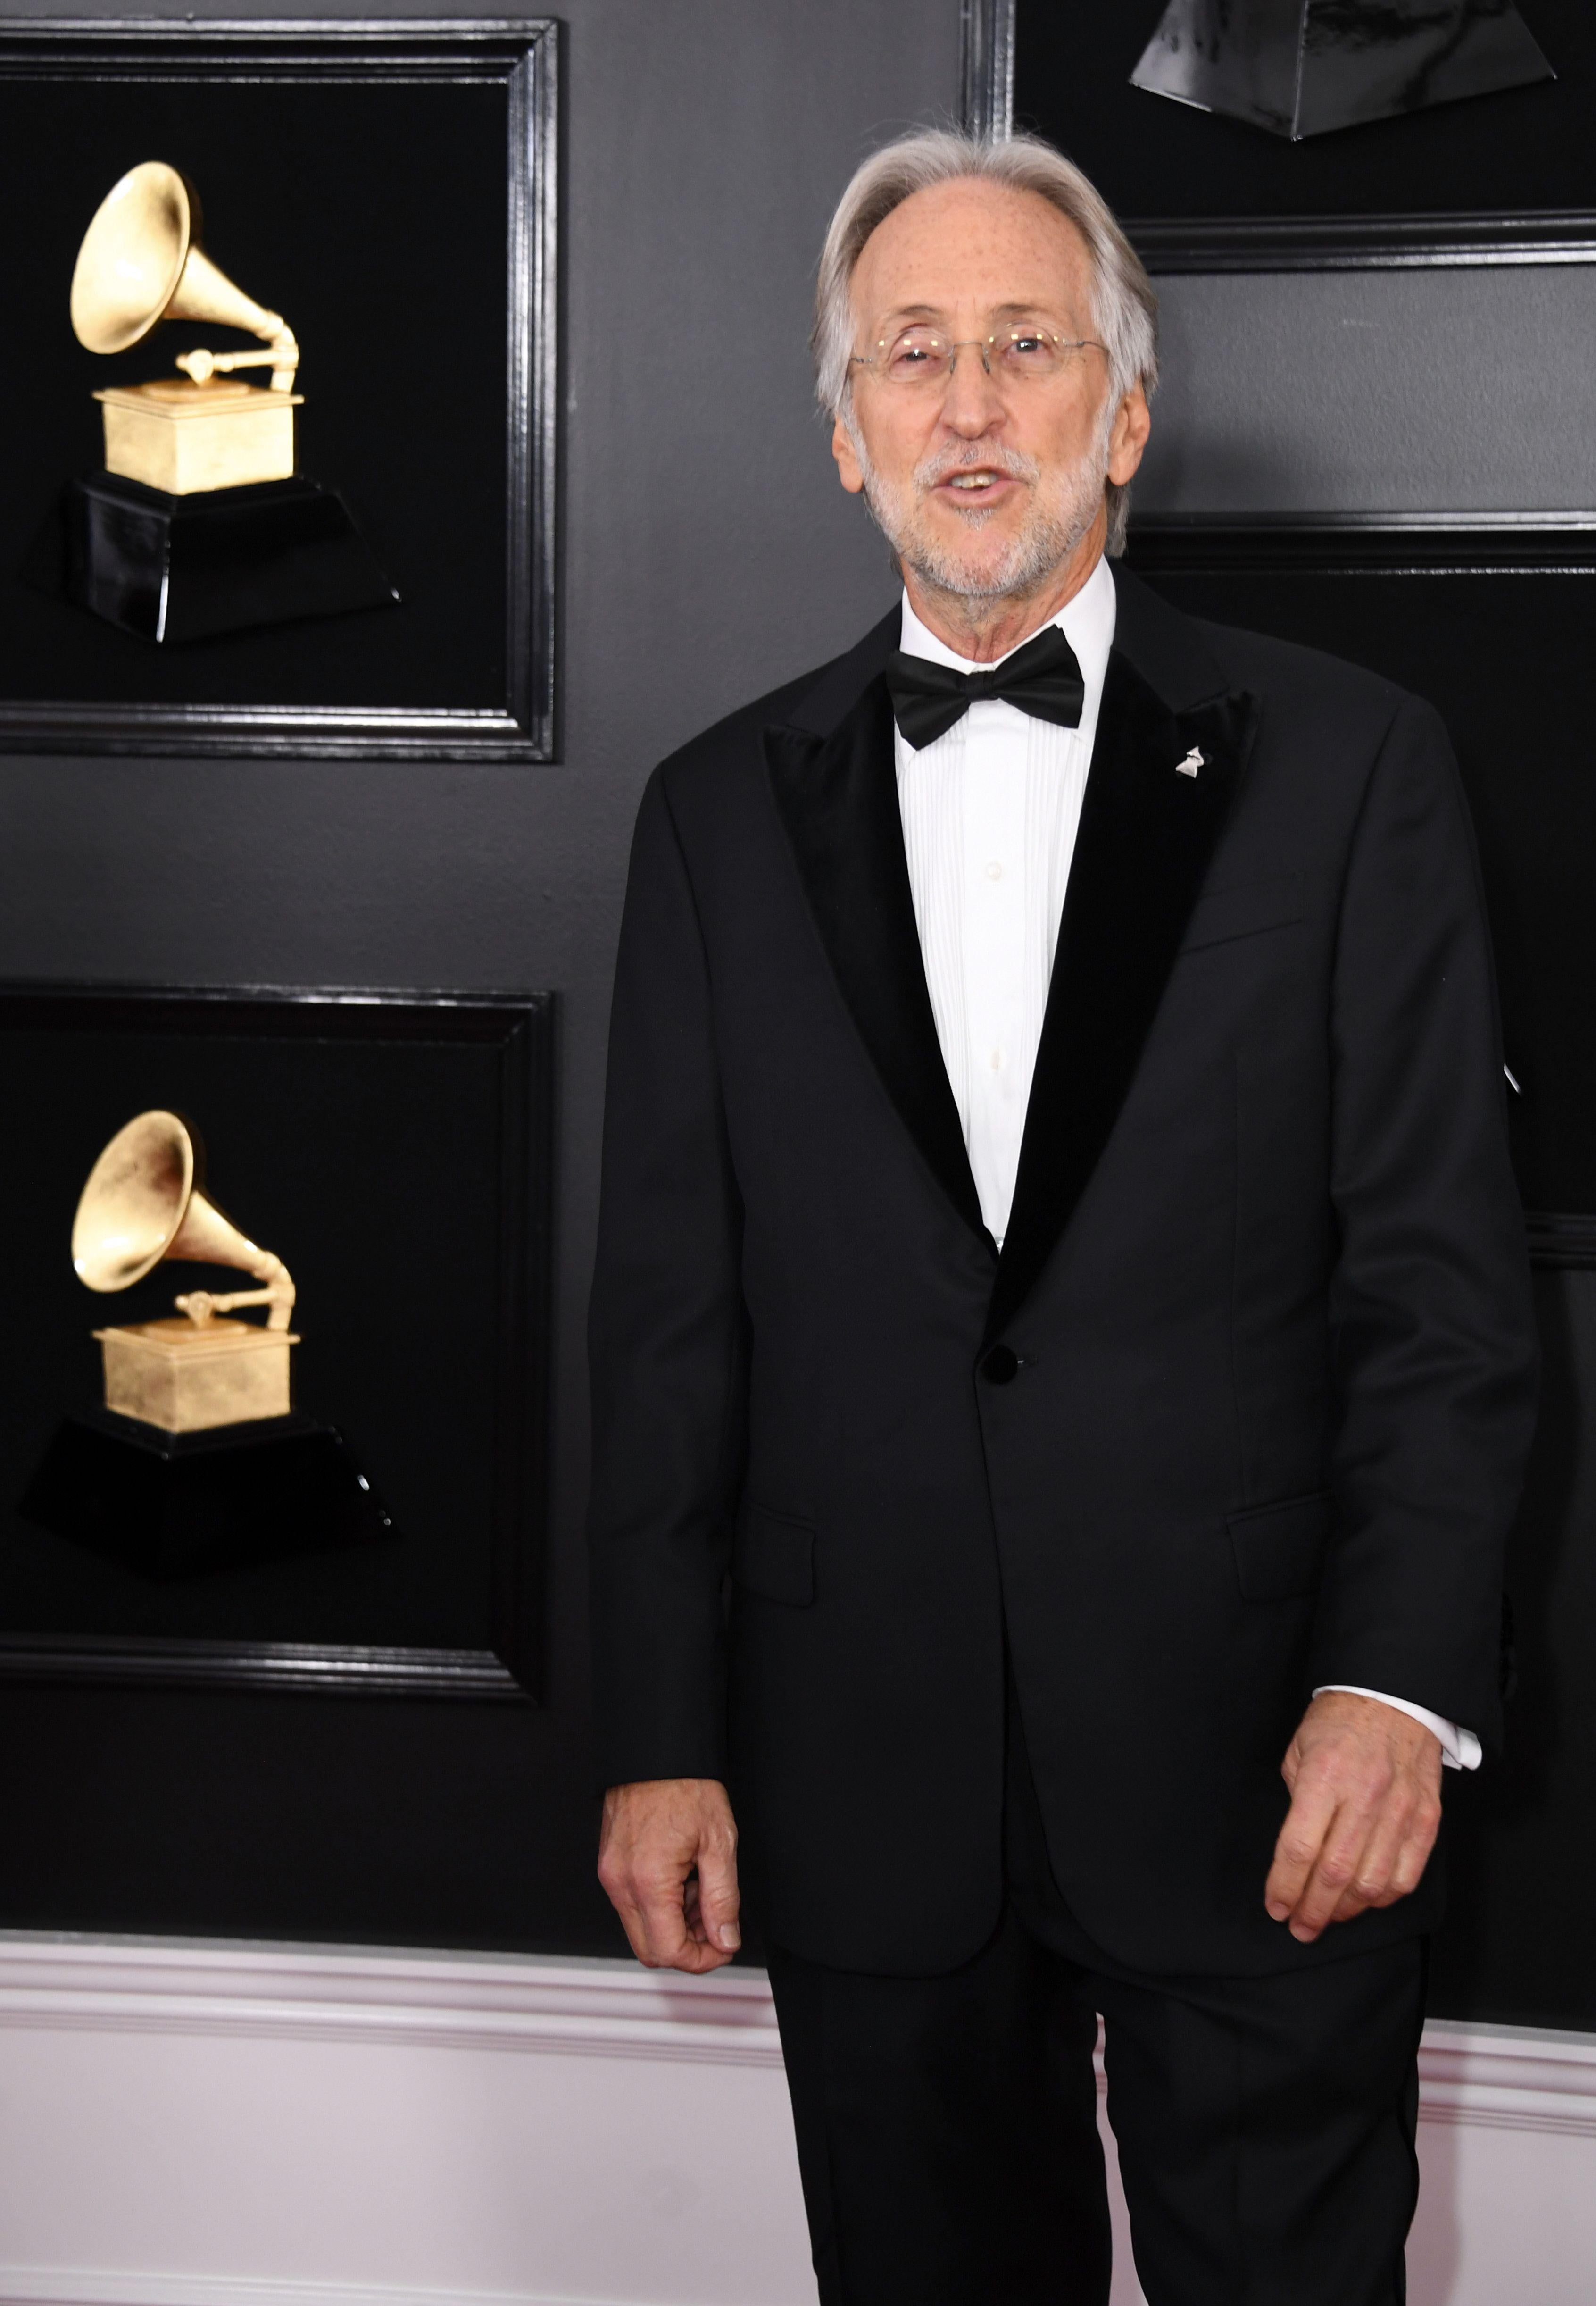 The Recording Academy President Neil Portnow arrives for the 61st Annual Grammy Awards on February 10, 2019, in Los Angeles. (Photo by VALERIE MACON / AFP)        (Photo credit should read VALERIE MACON/AFP/Getty Images)